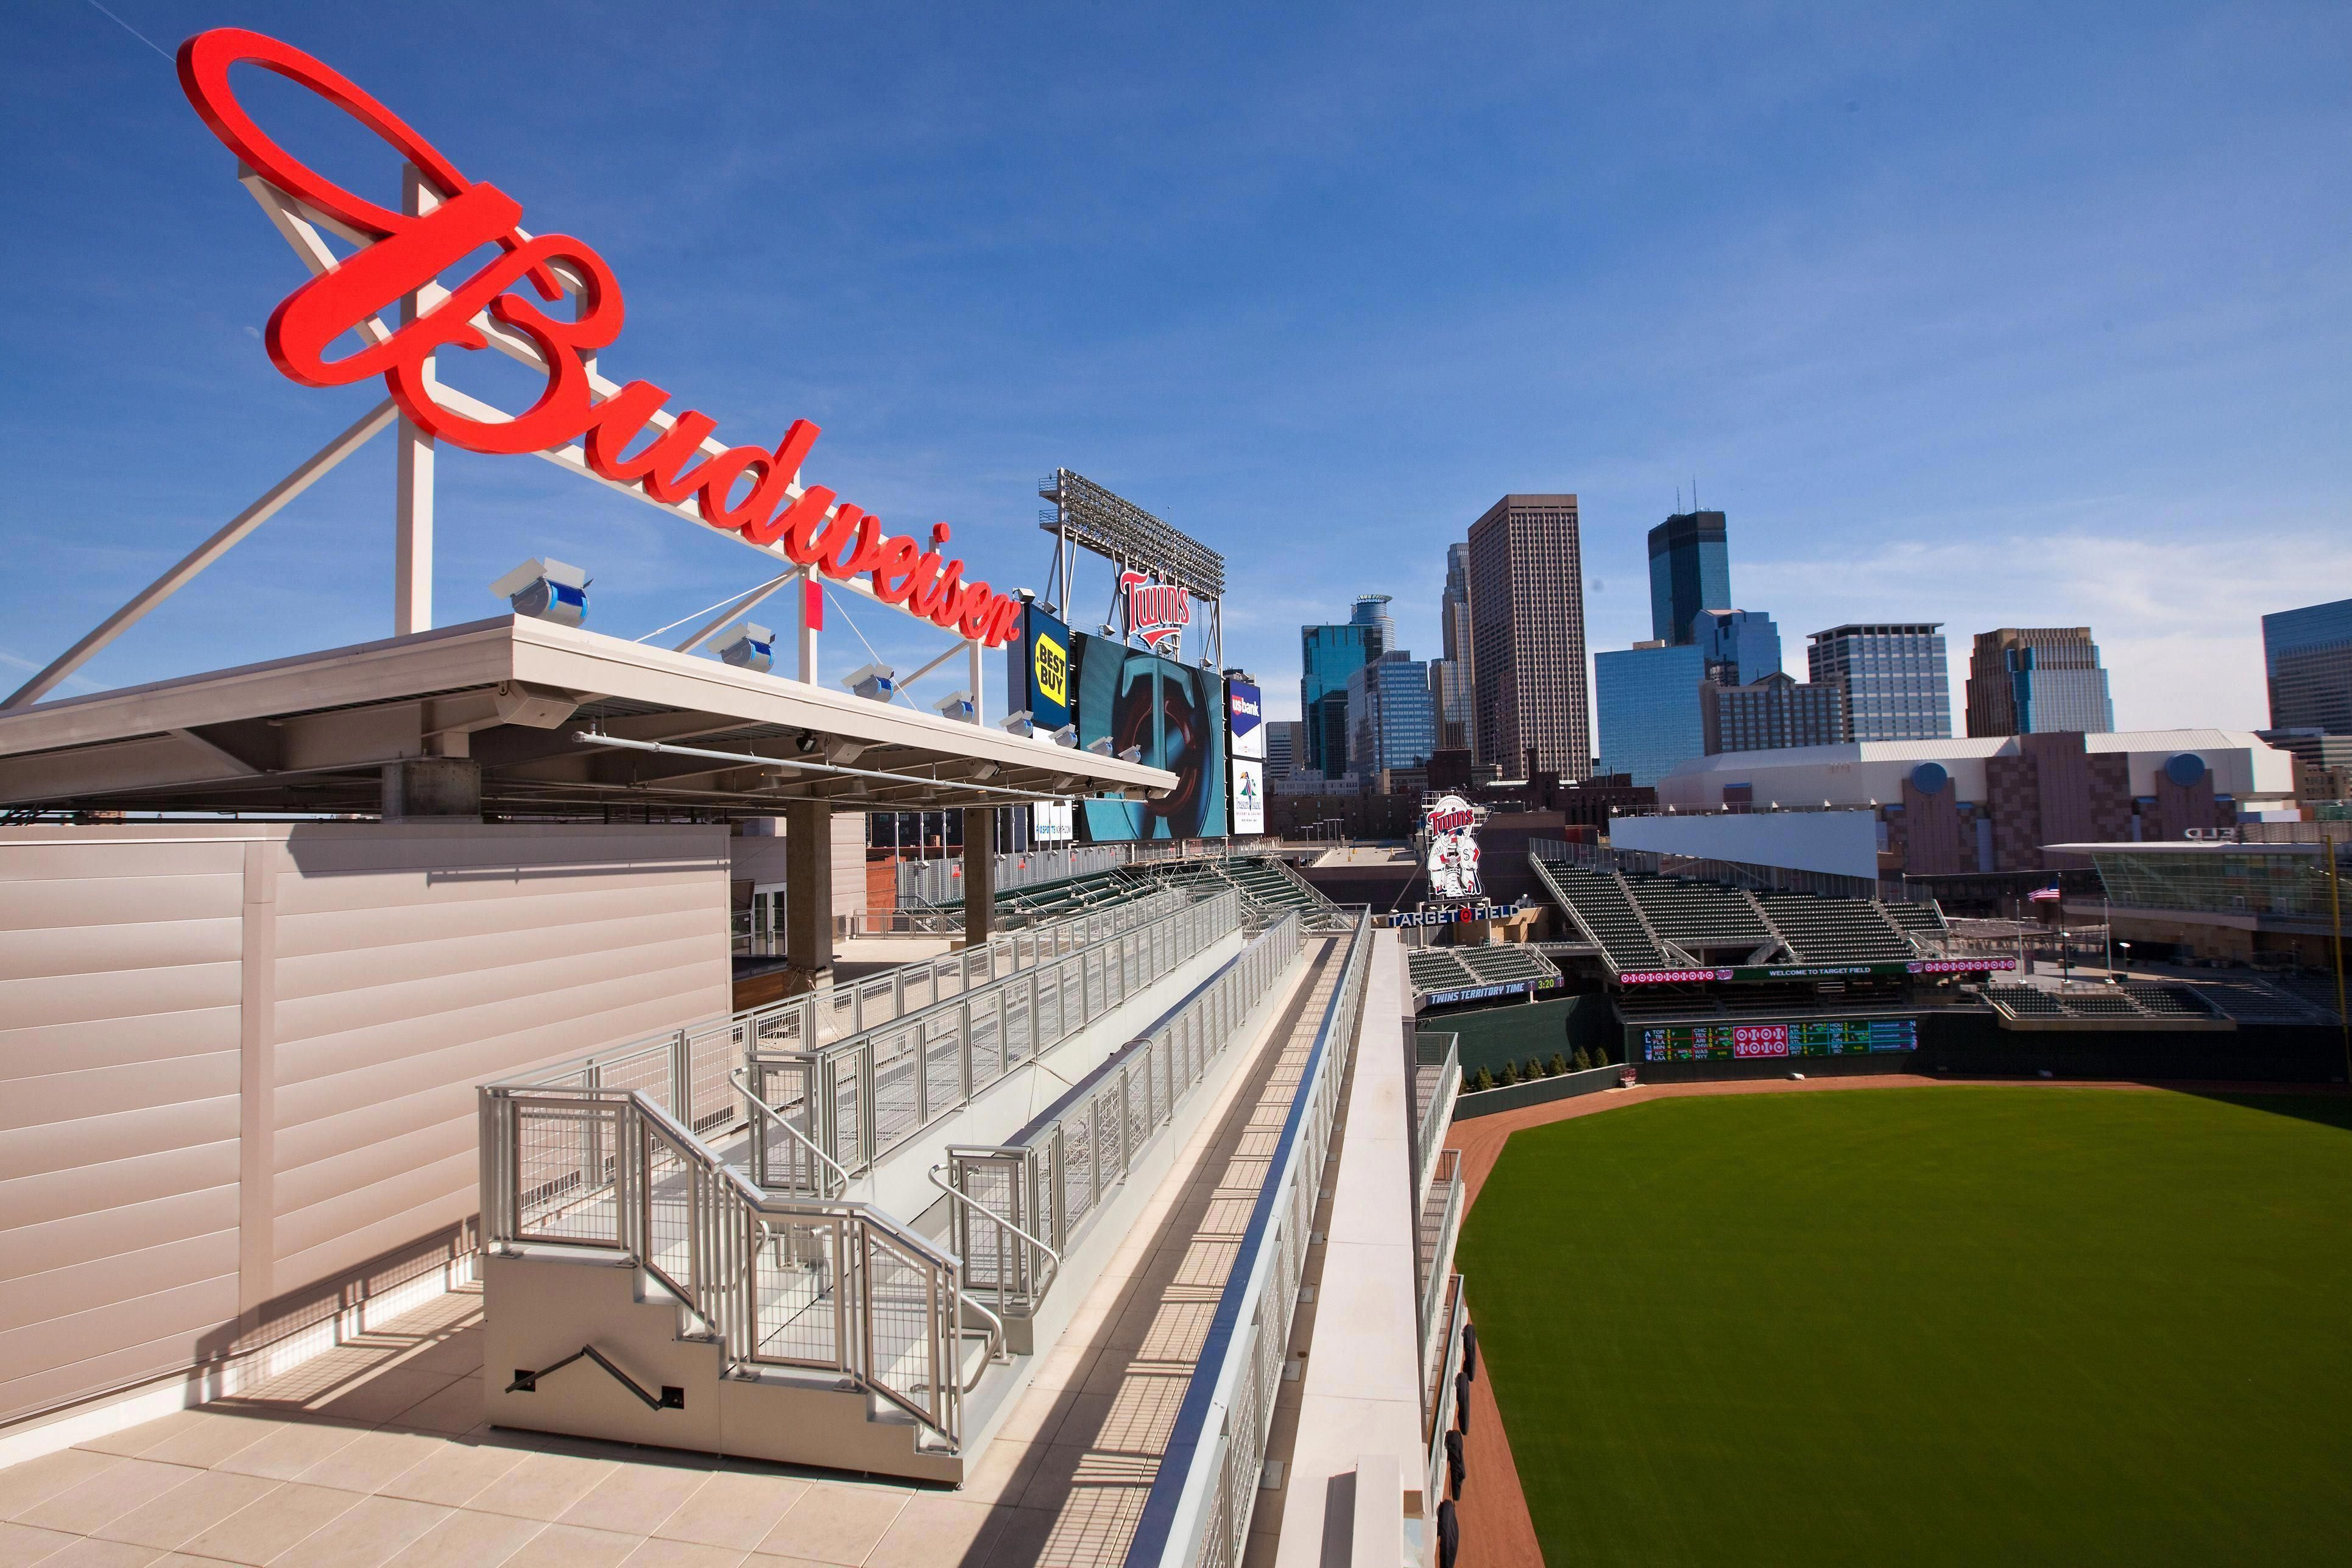 Top Baseball Prospects Baseballexercises Product Id 6729332486 Twinsbaseball Roof Cladding Brick Roof Roof Architecture